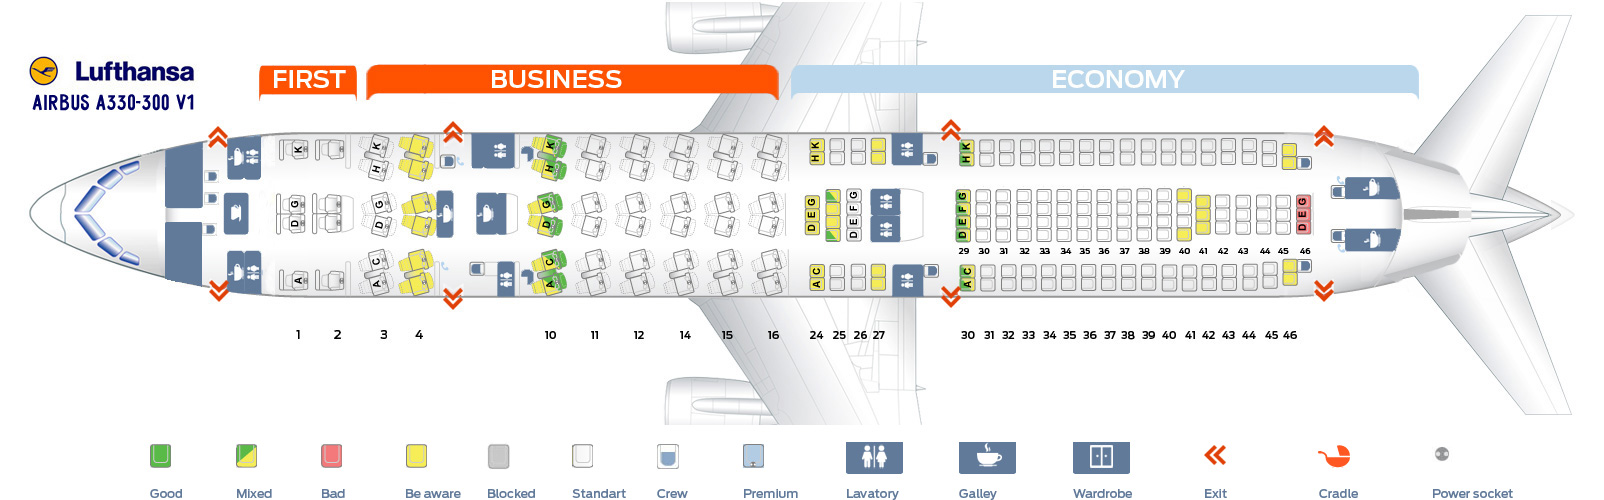 seat map airbus a330 300 lufthansa best seats in plane